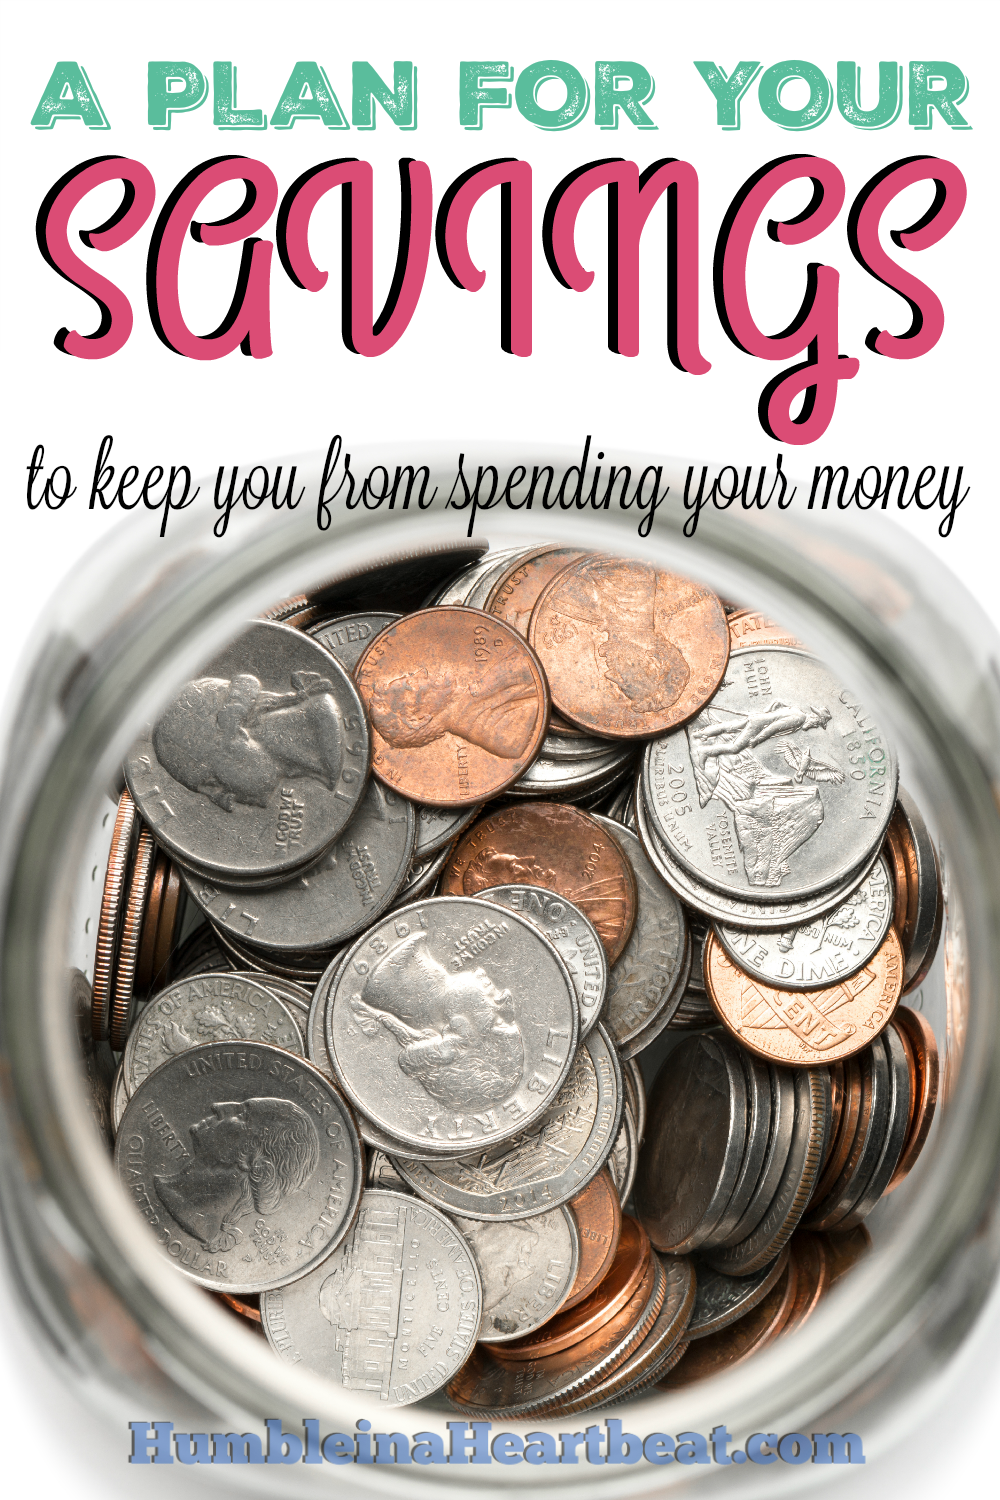 Unless you know what you want to do with your money, you will likely just spend it every.single.time. So make a plan to save that money and start seeing progress with your goals!